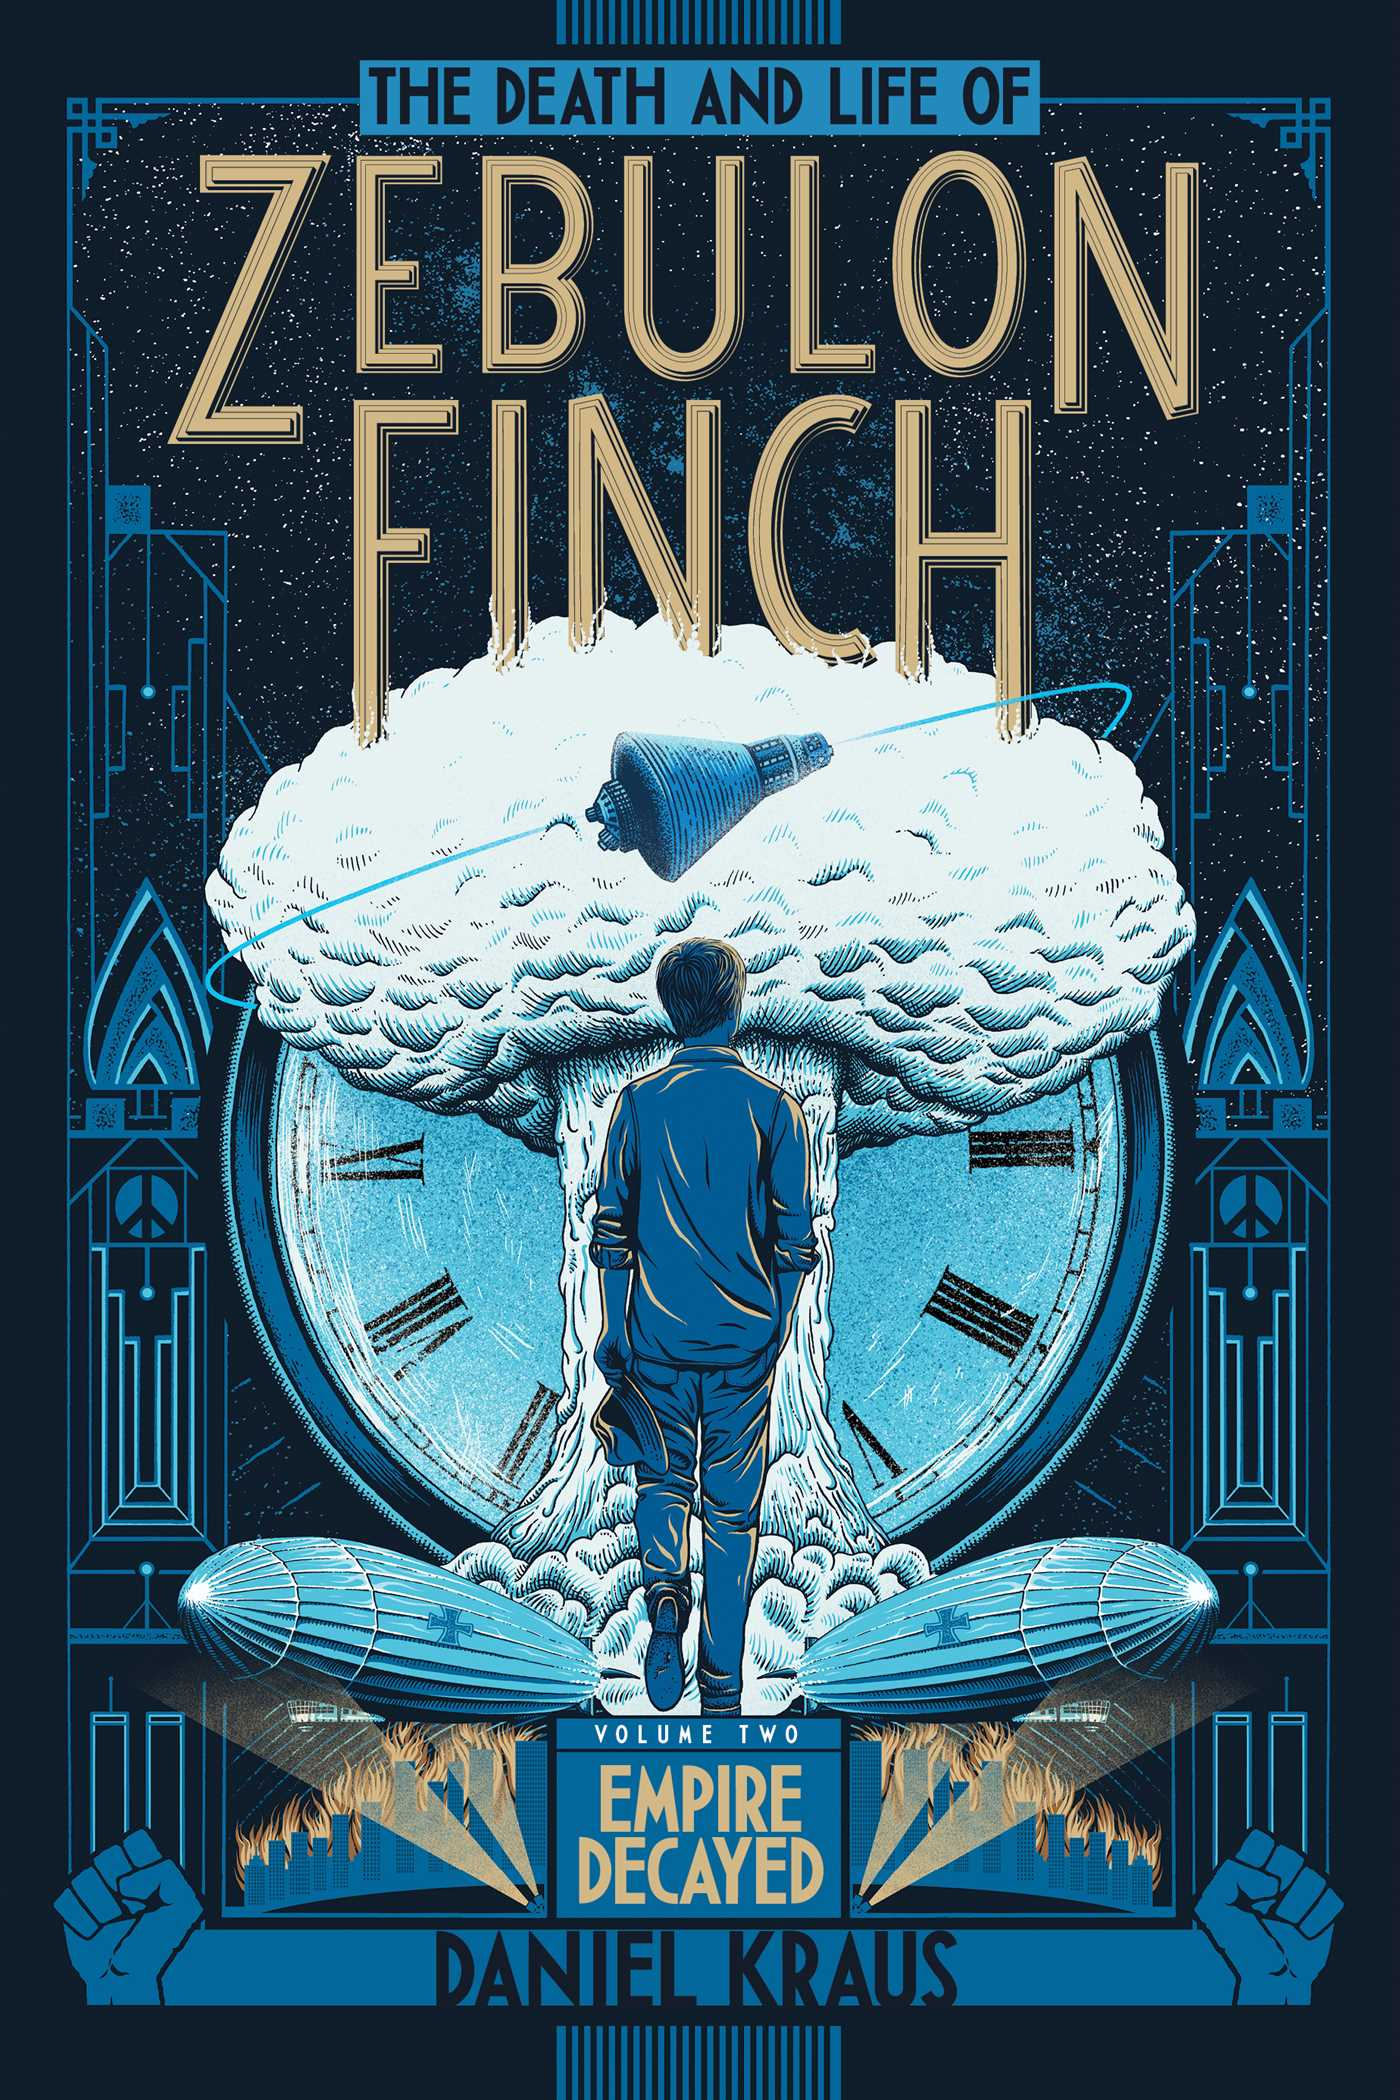 The death and life of zebulon finch volume two 9781481411431 hr